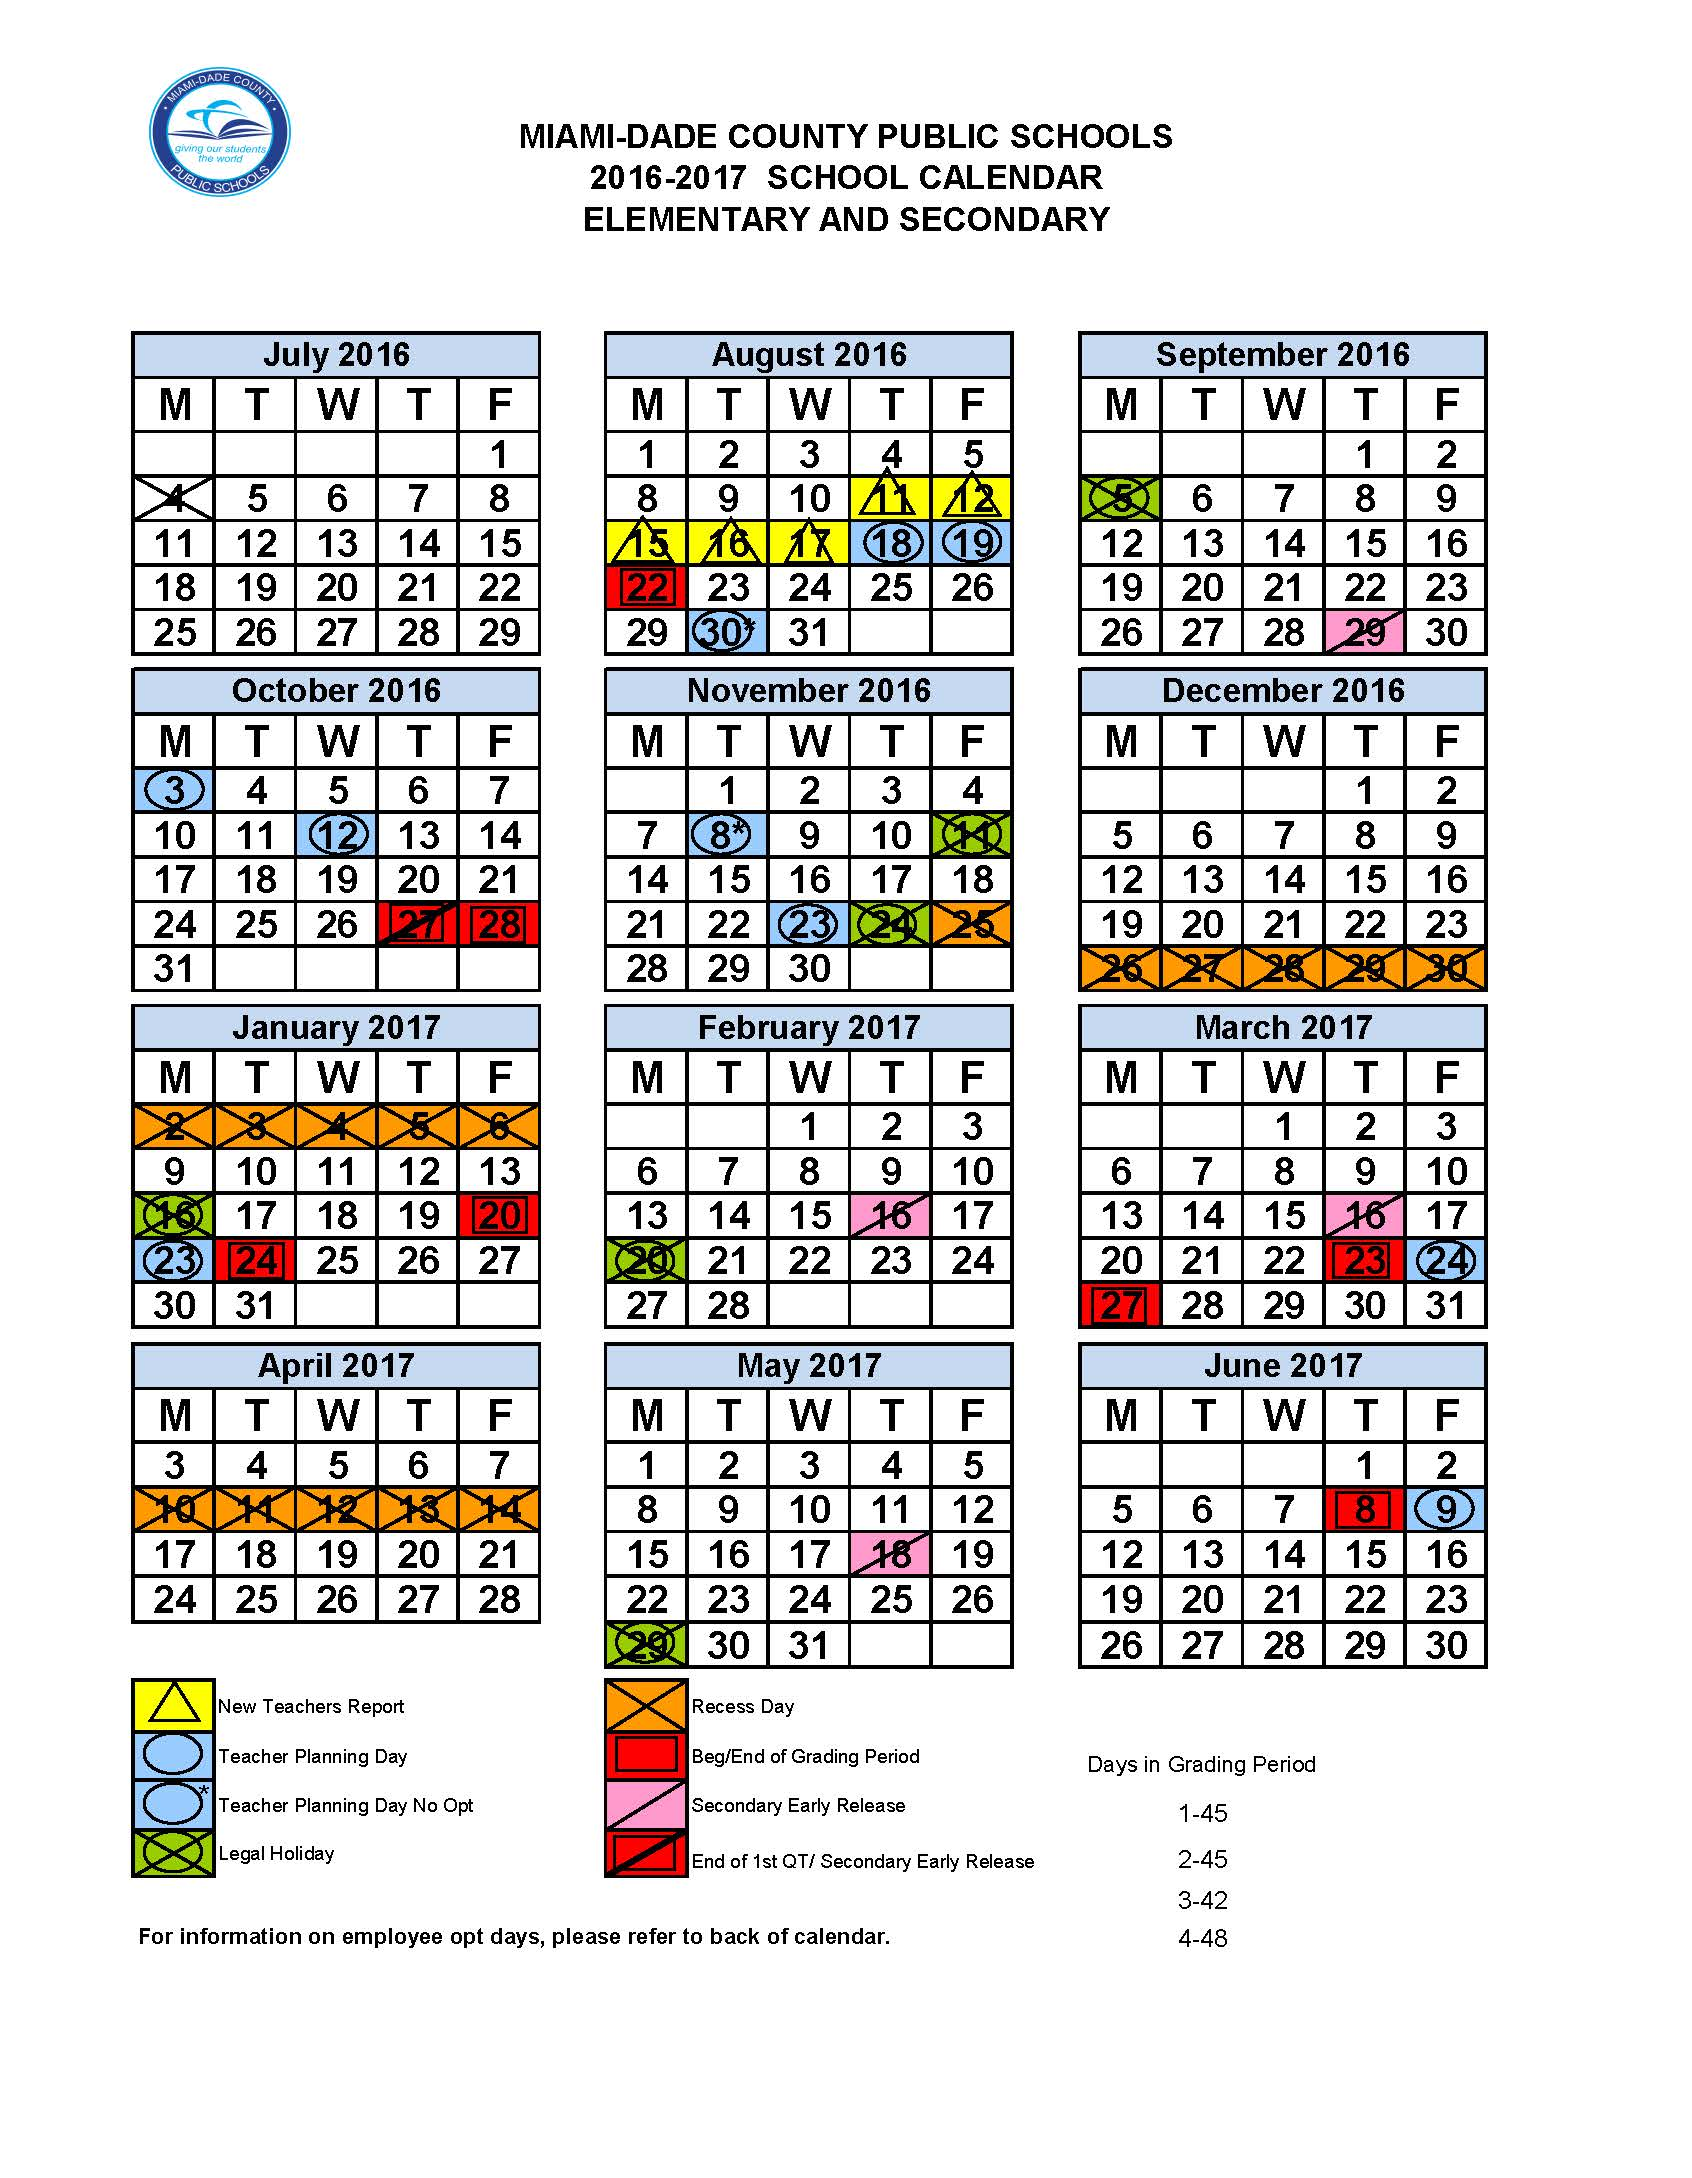 MDCPS 2016-2017 Academic Calendar – Dr. Dorothy Bendross-Mindingall